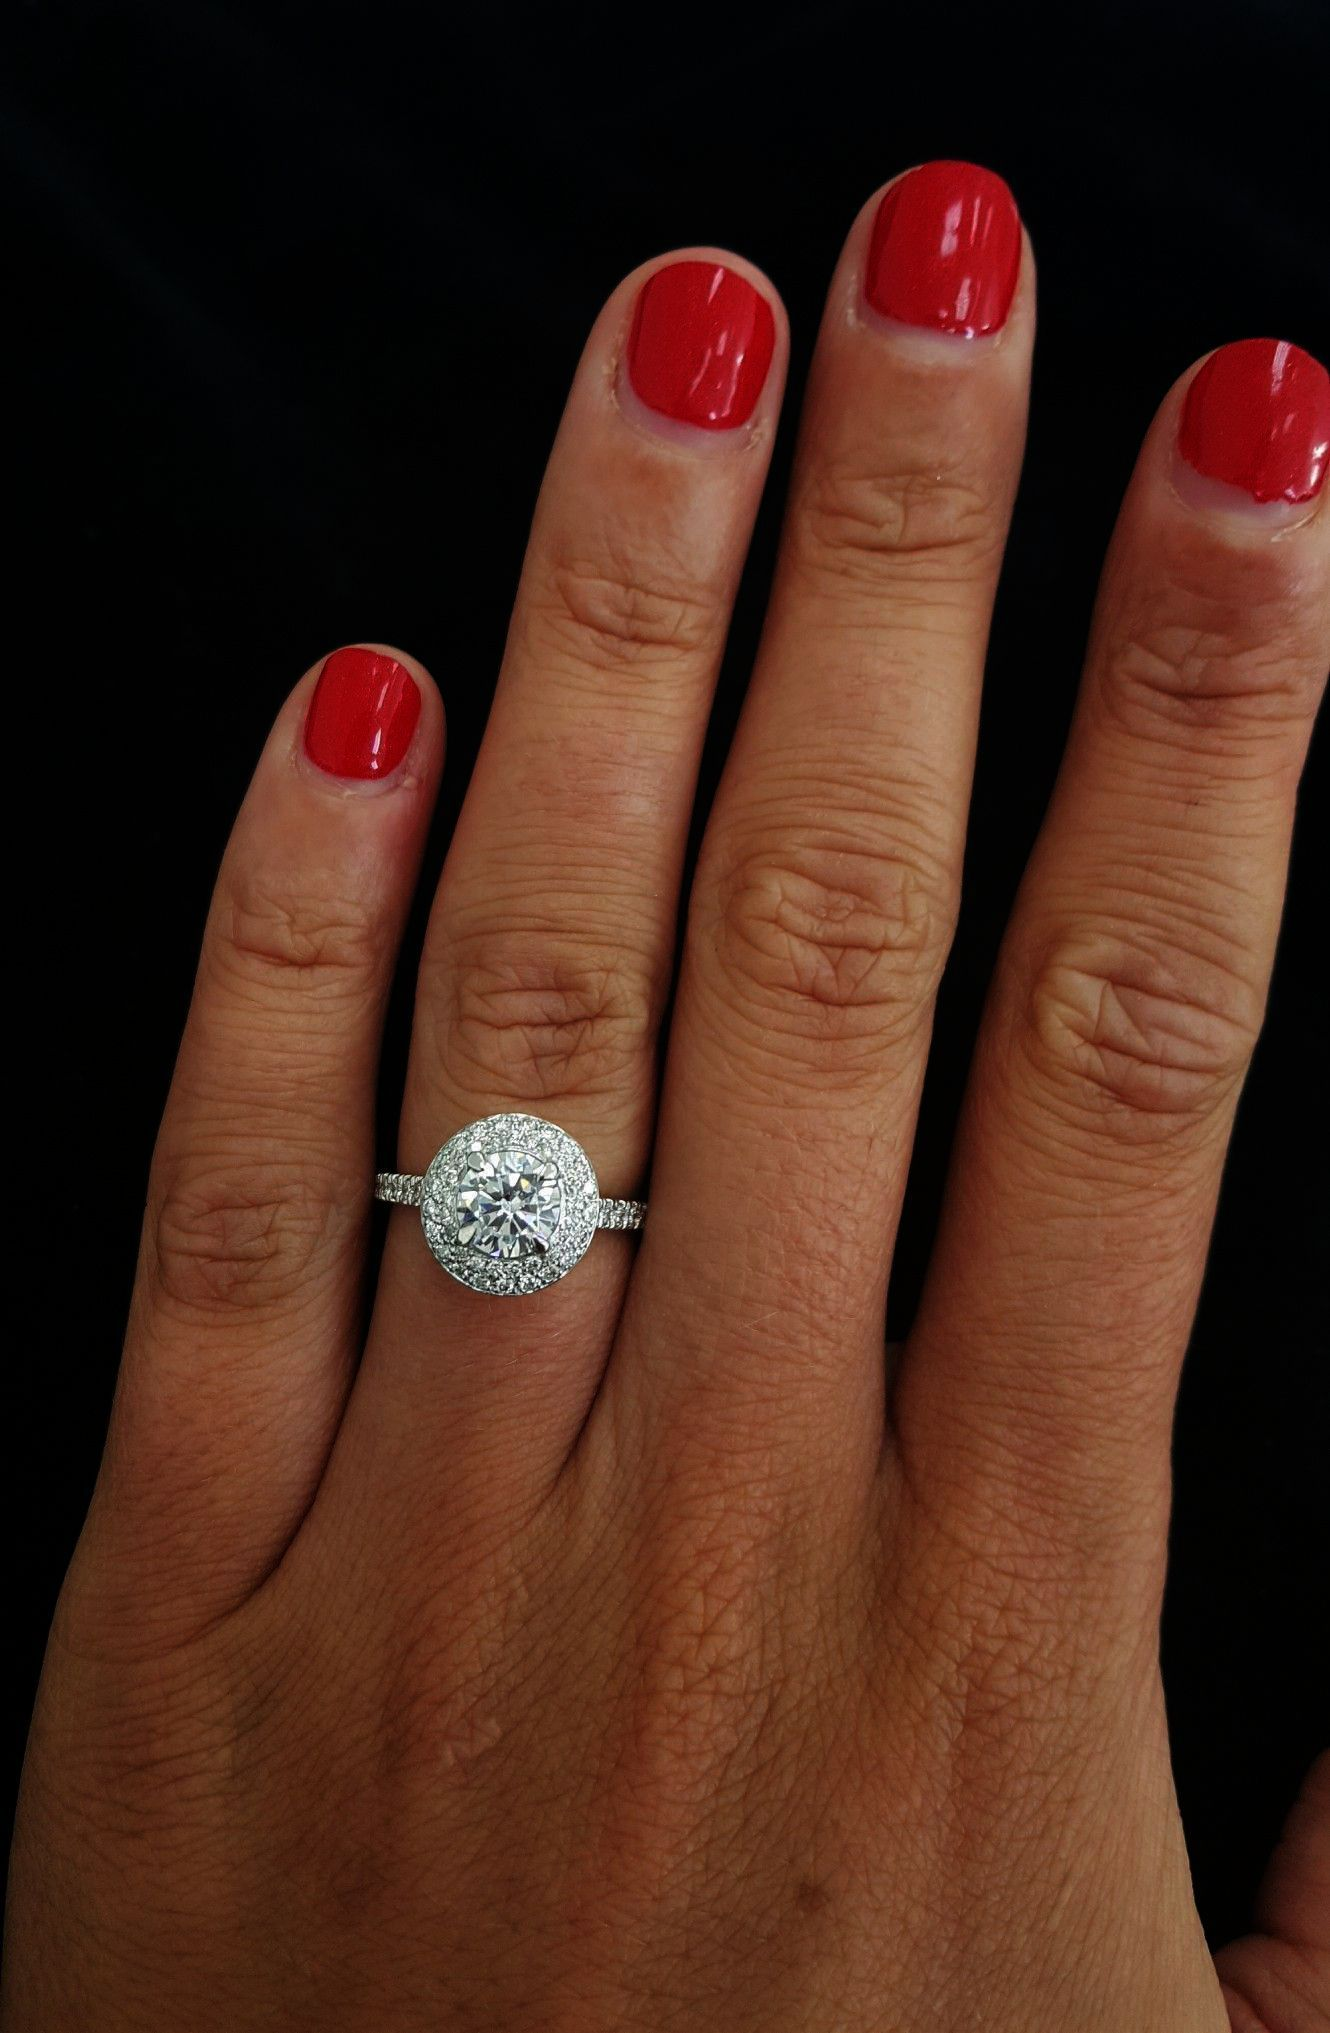 Jewellery Online Price Whenever Nepali Jewellery Near Me Cremation Jewelry Stores Ne Double Halo Engagement Ring Halo Engagement Ring Wedding Rings Engagement